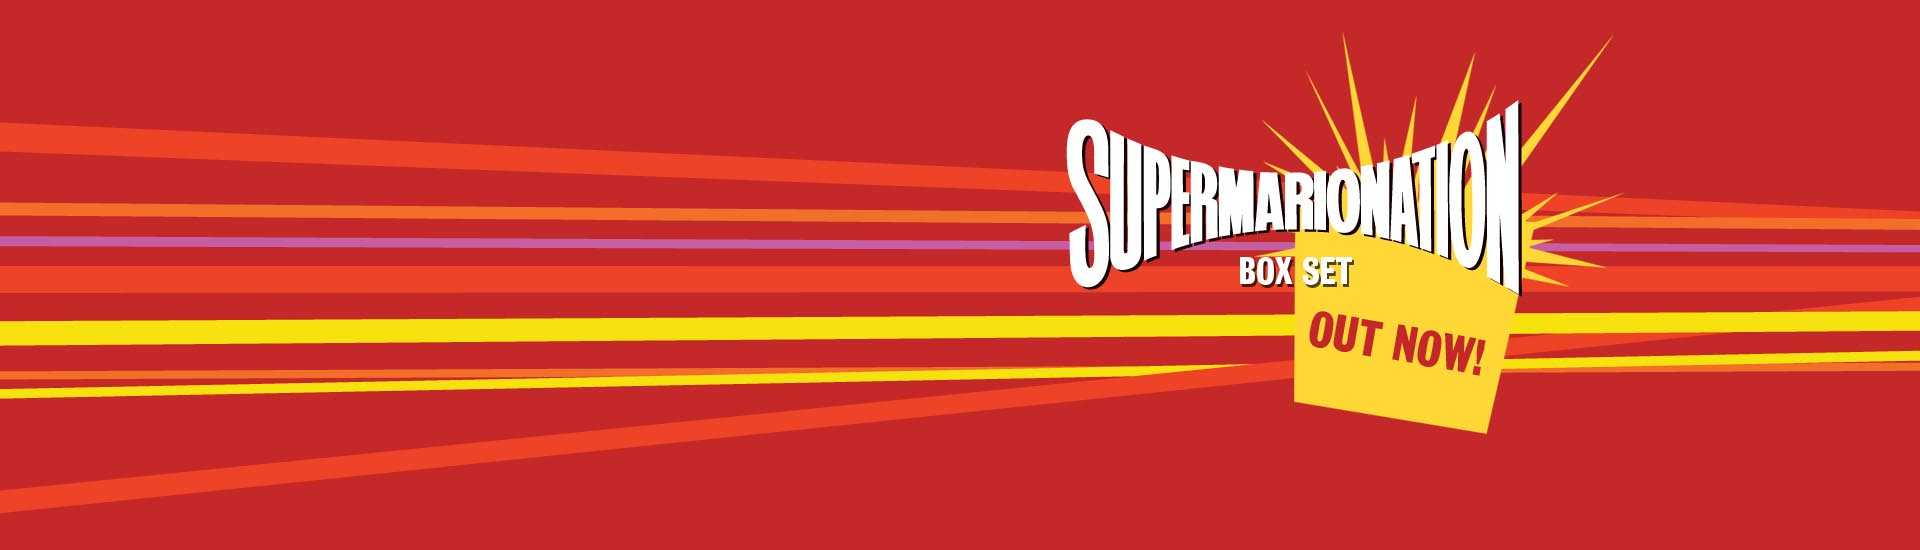 Supermarionation Box Set: OUT NOW